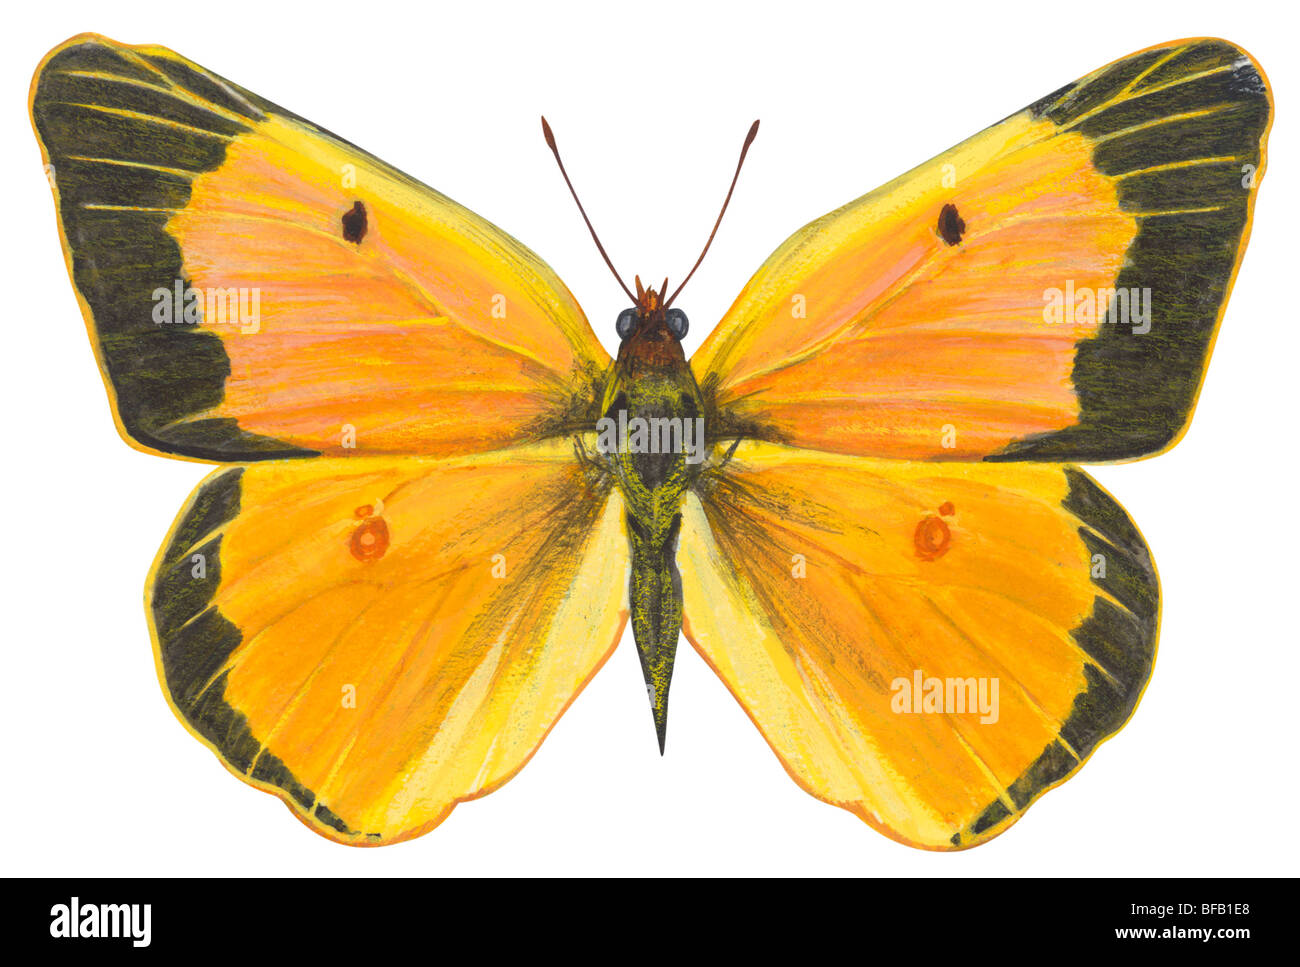 Clouded sulfur butterfly - Stock Image